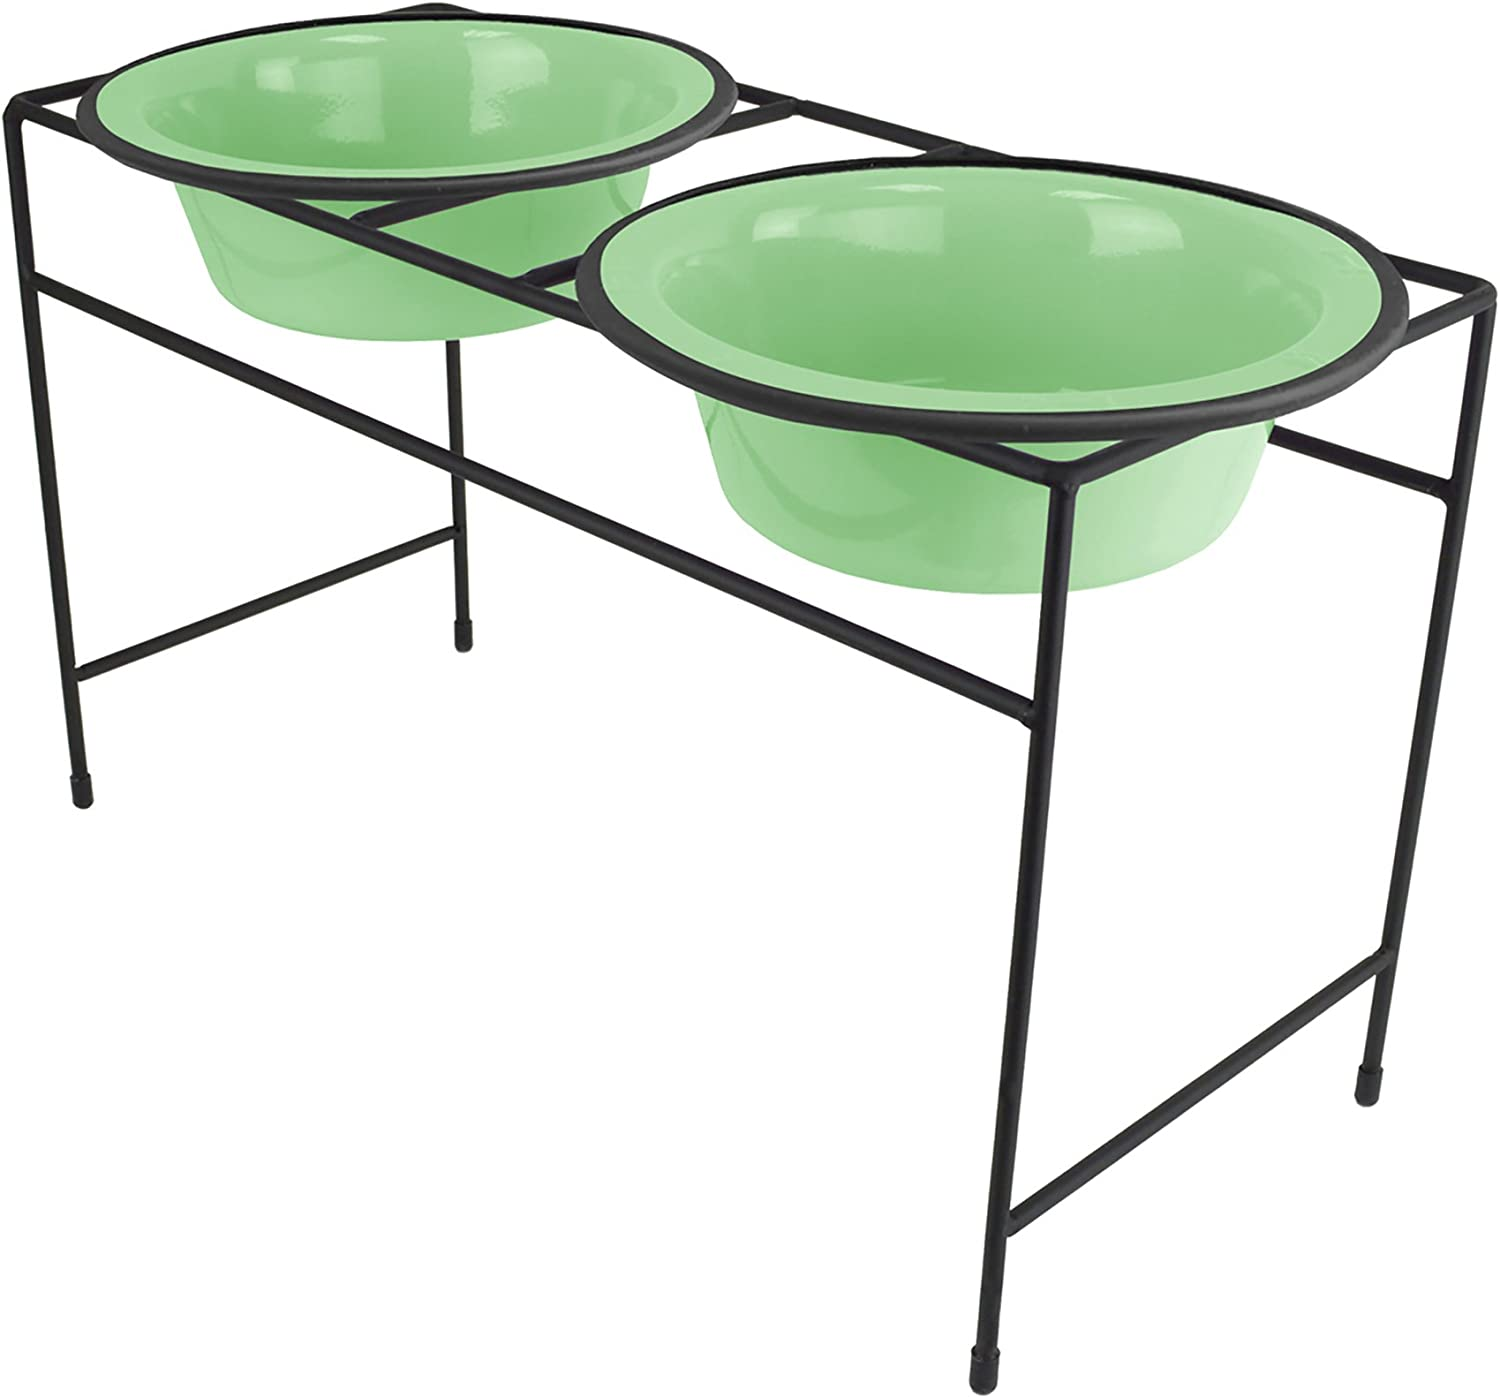 Platinum Pets Modern Double Diner Feeder With Stainless Steel Cat/Dog Bowl, Mint Green, Large